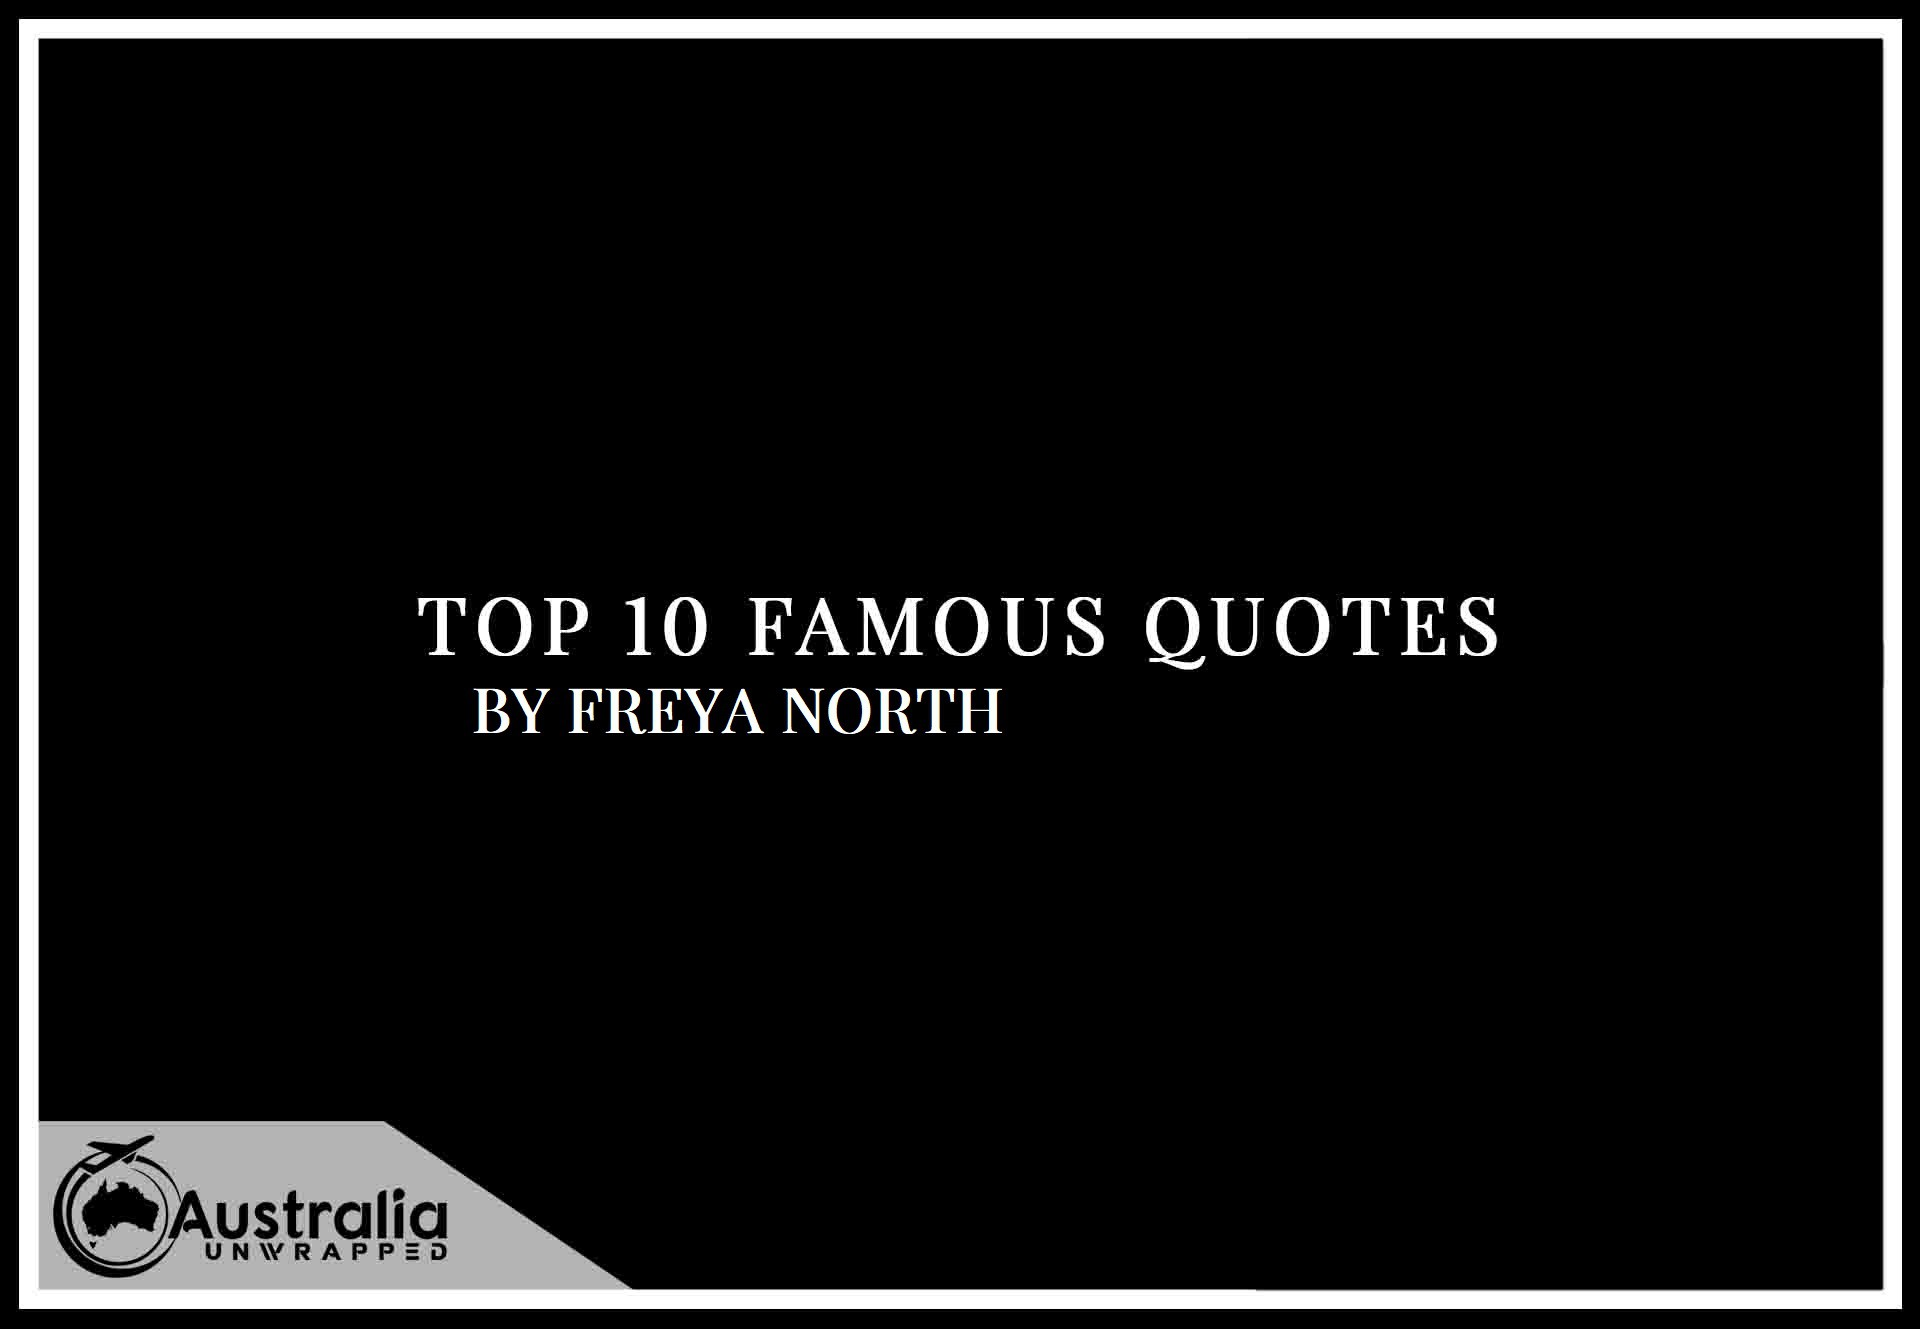 Top 10 Famous Quotes by Author Freya North